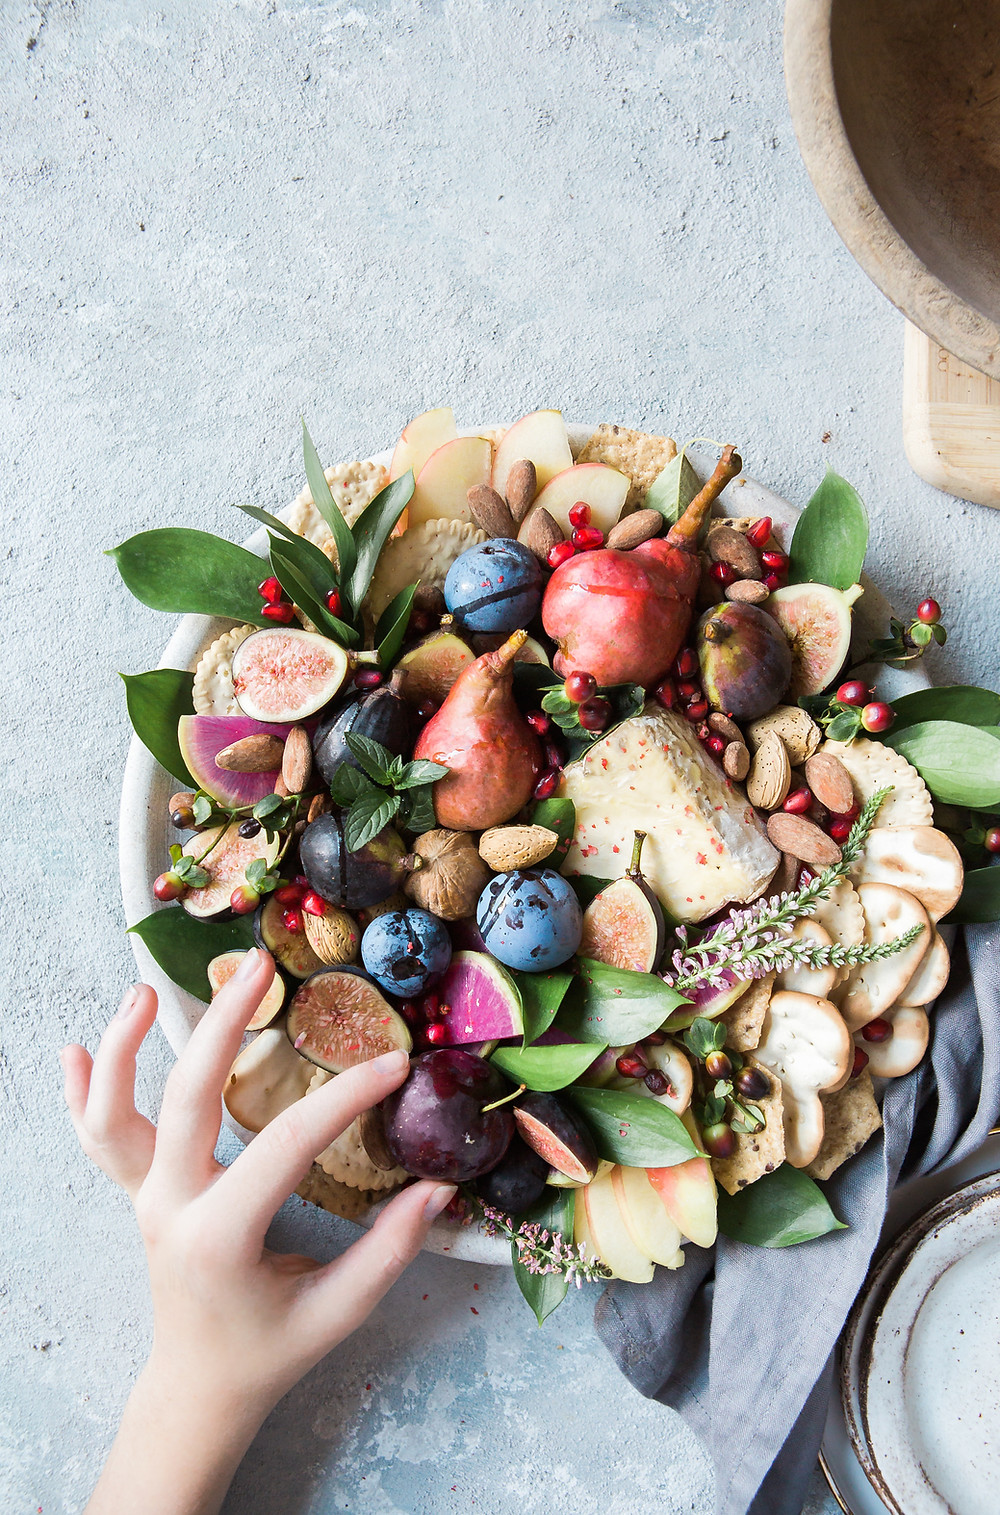 a bowl of food including figs, pears, plums, sliced apples, nuts and seeds, crackers and green leaves, a hand reaches in to pick up a purple plum